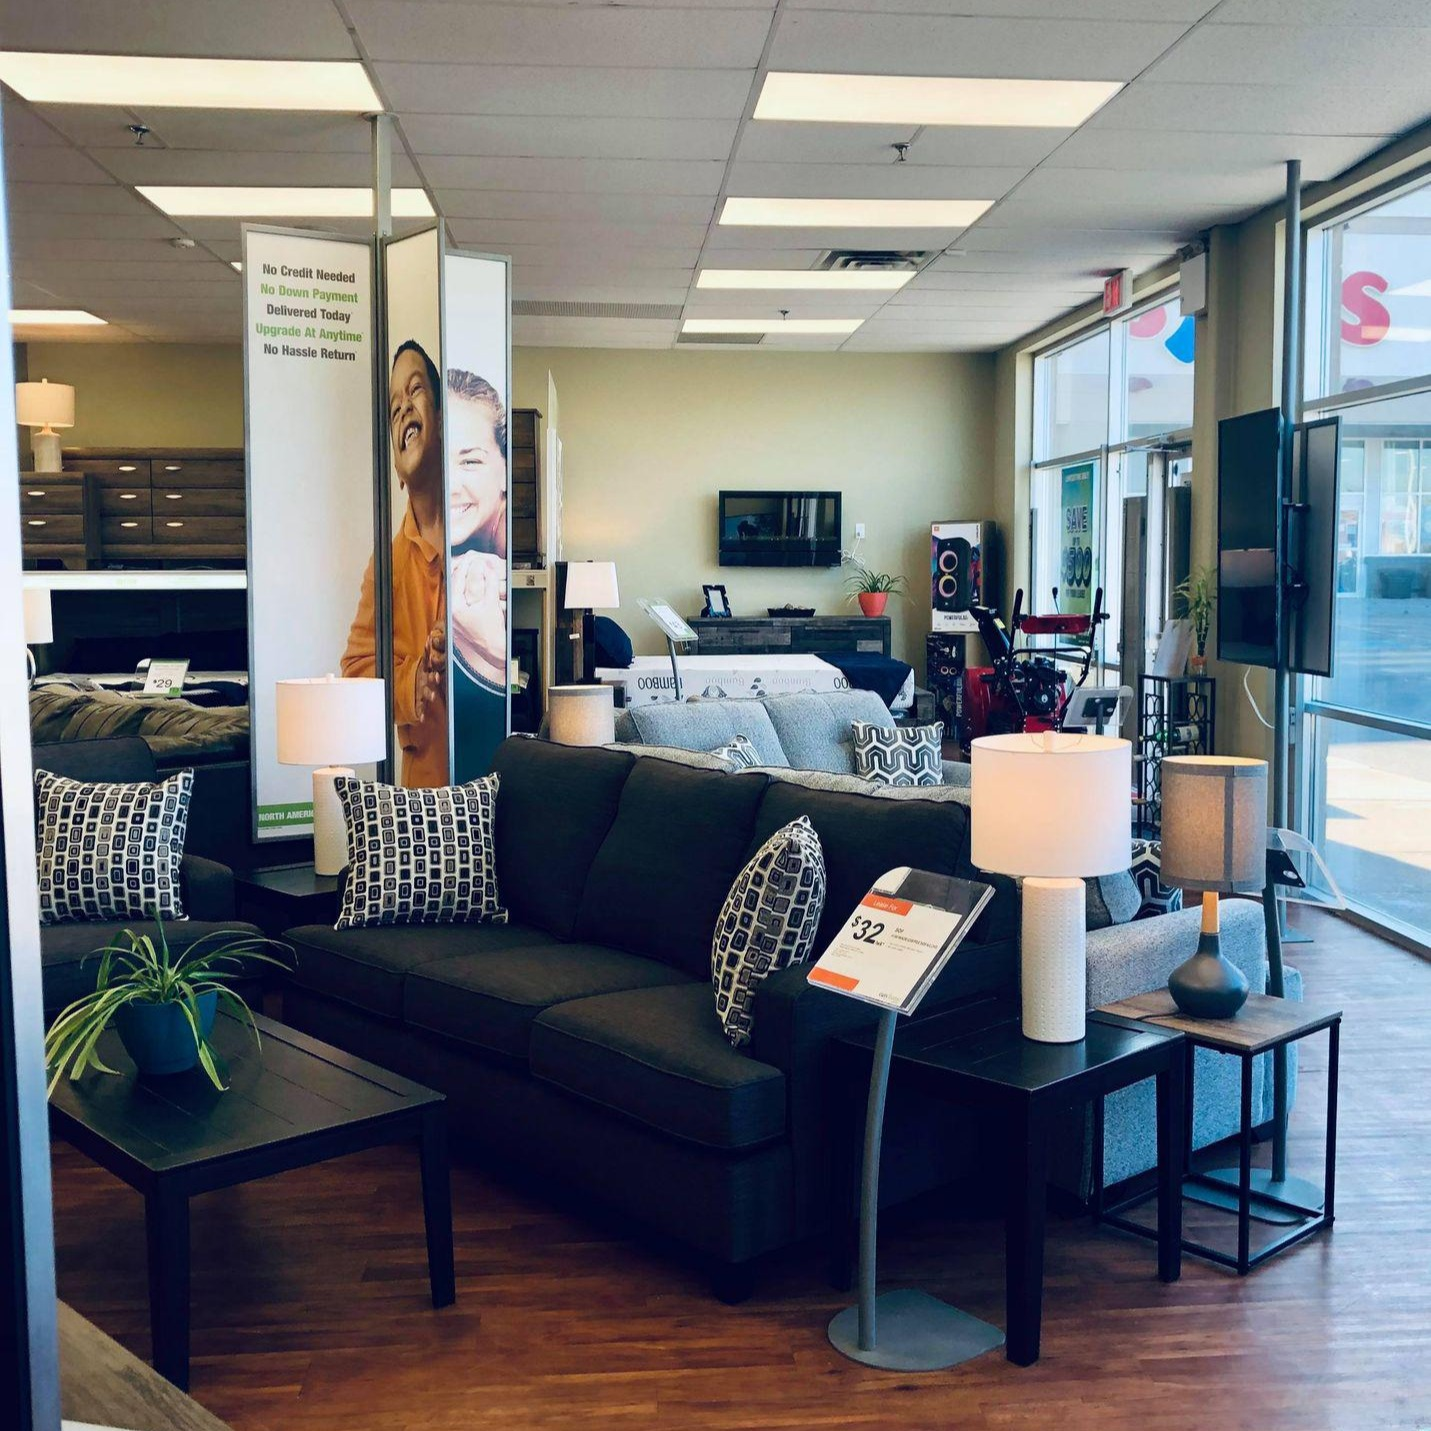 easyhome Lease-to-Own in Belleville